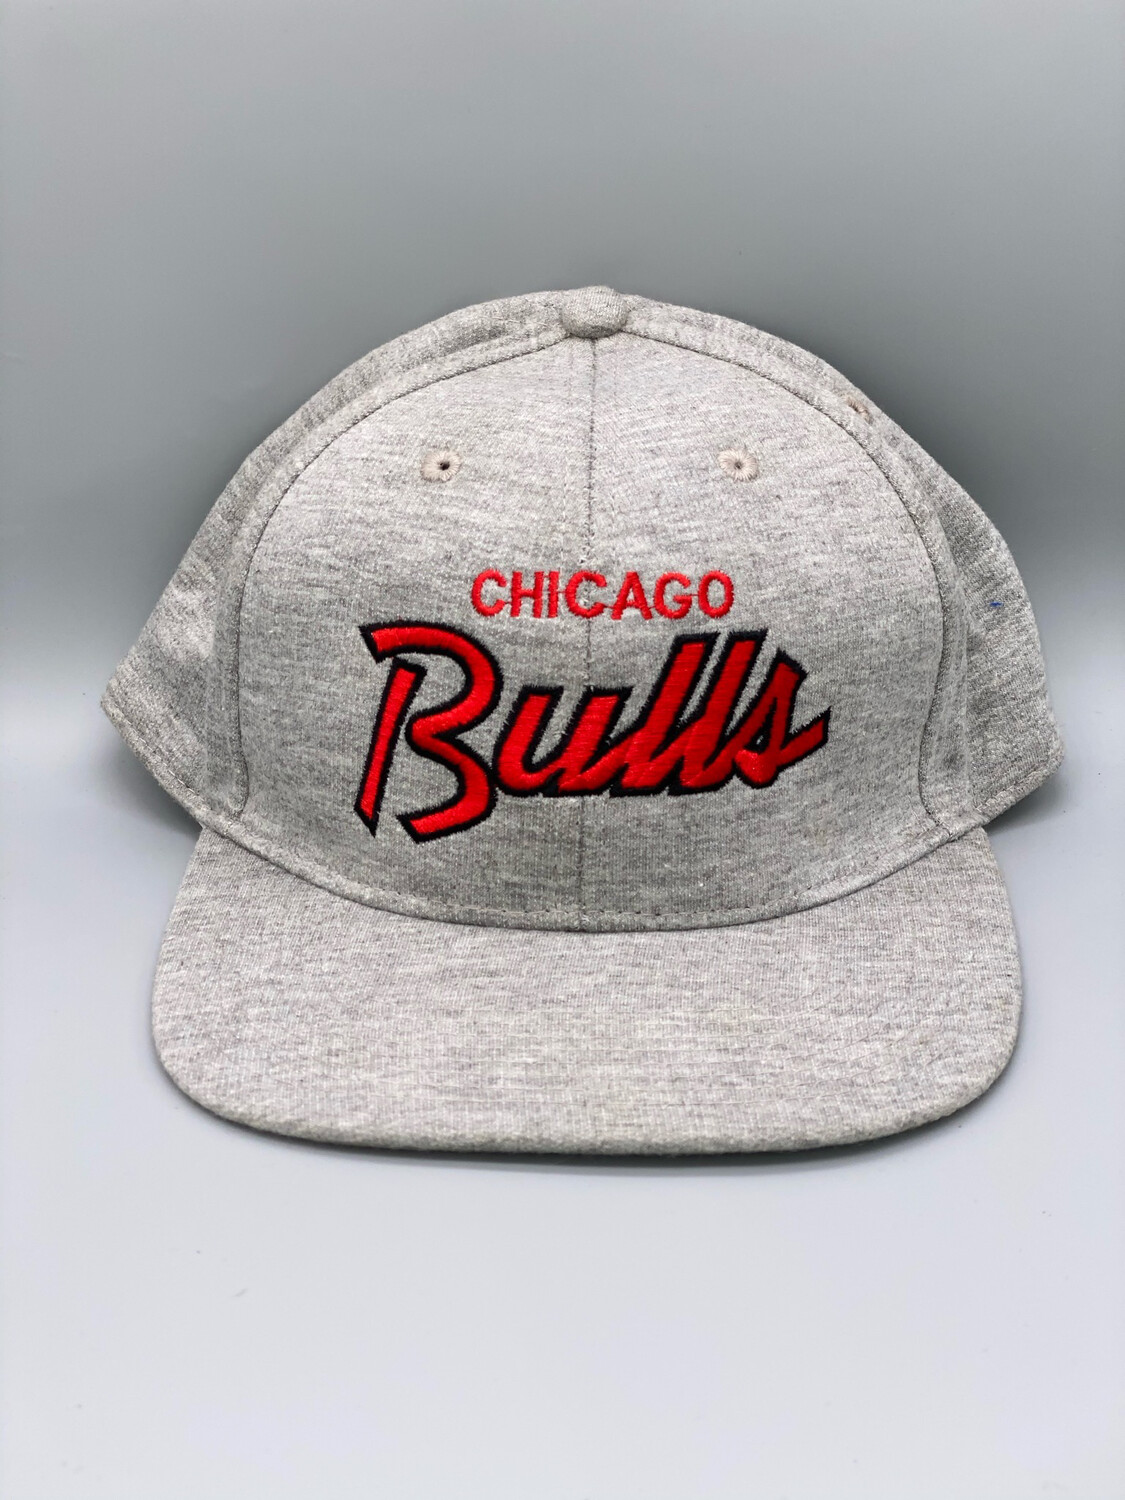 Grey Jersey Chicago Bulls Cap